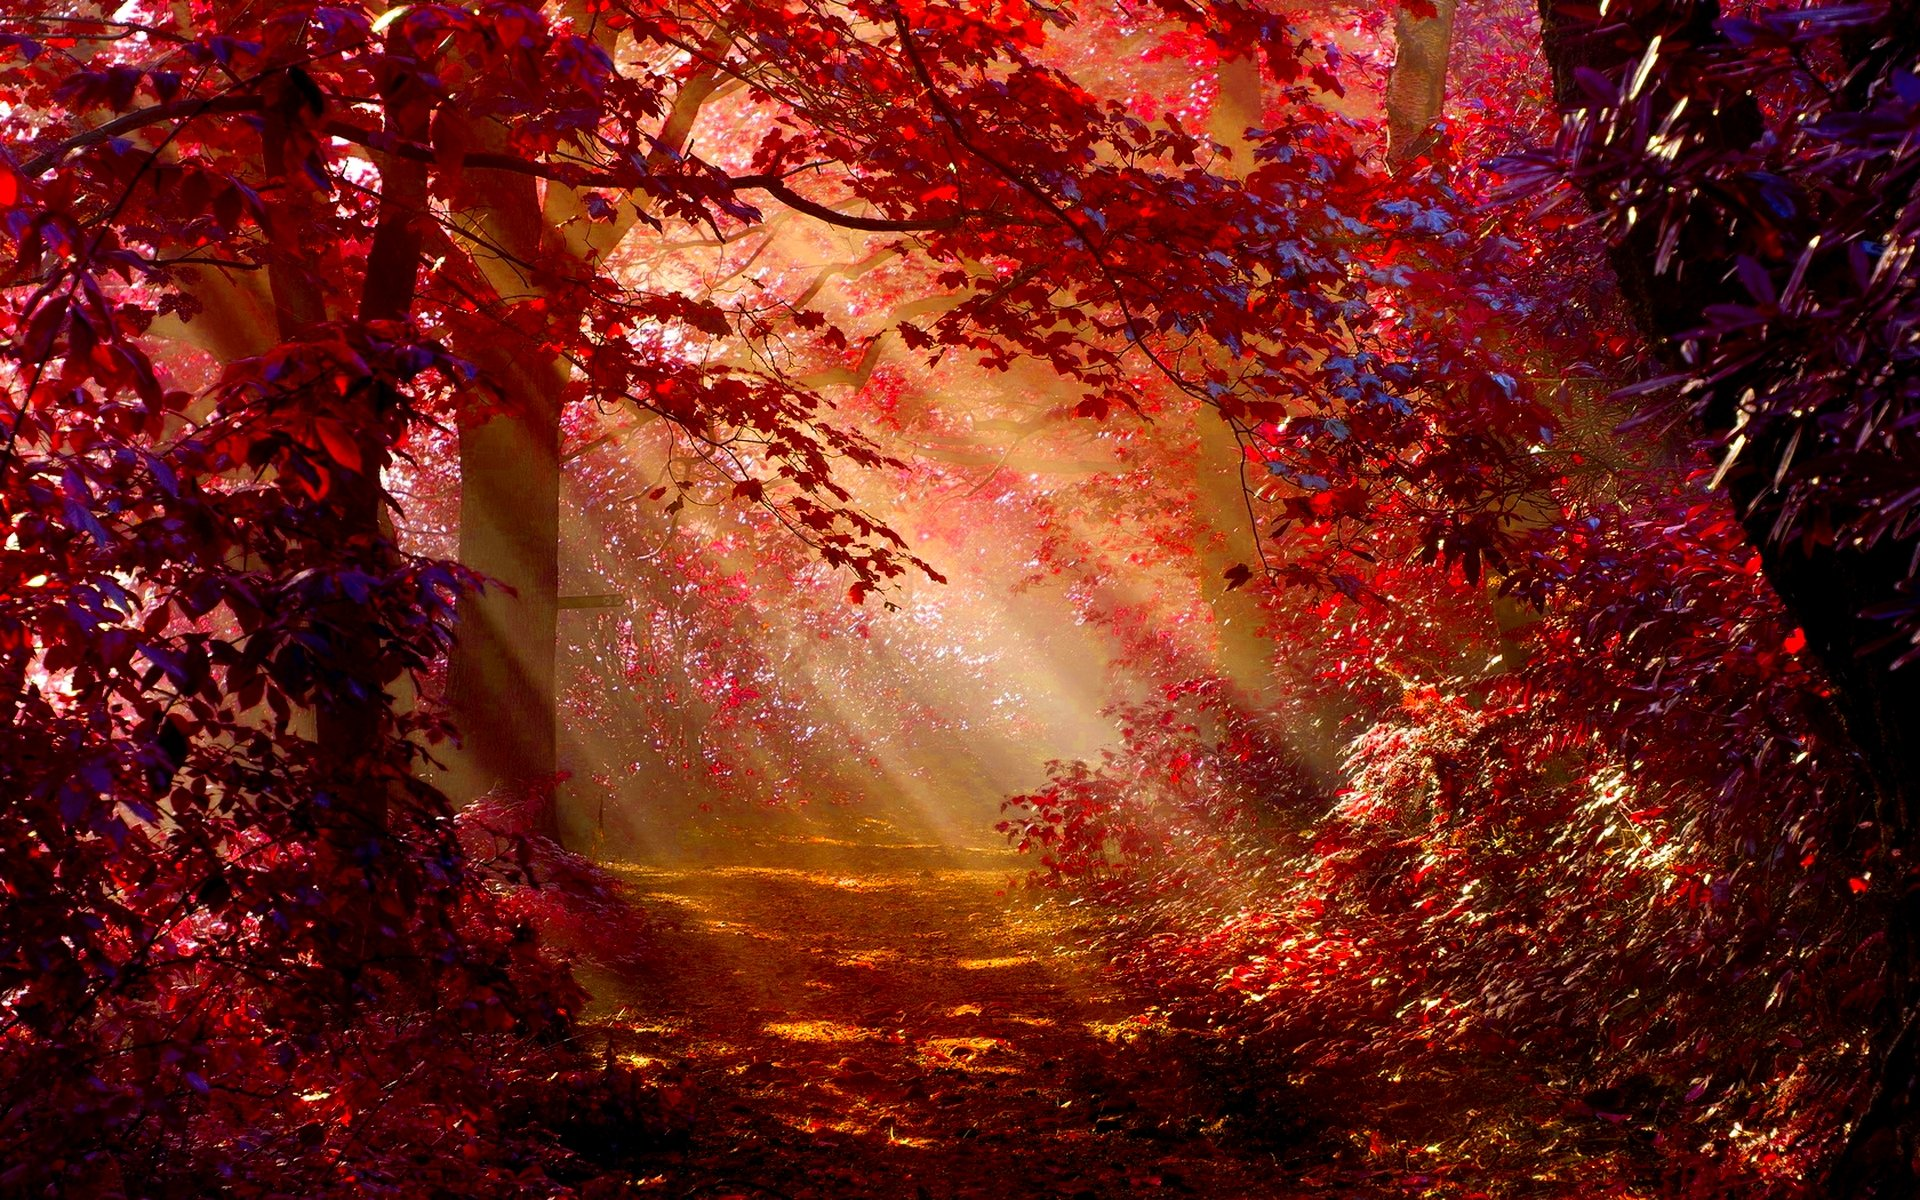 Sunlight In Autumn Forest Full HD Wallpaper And Background Image